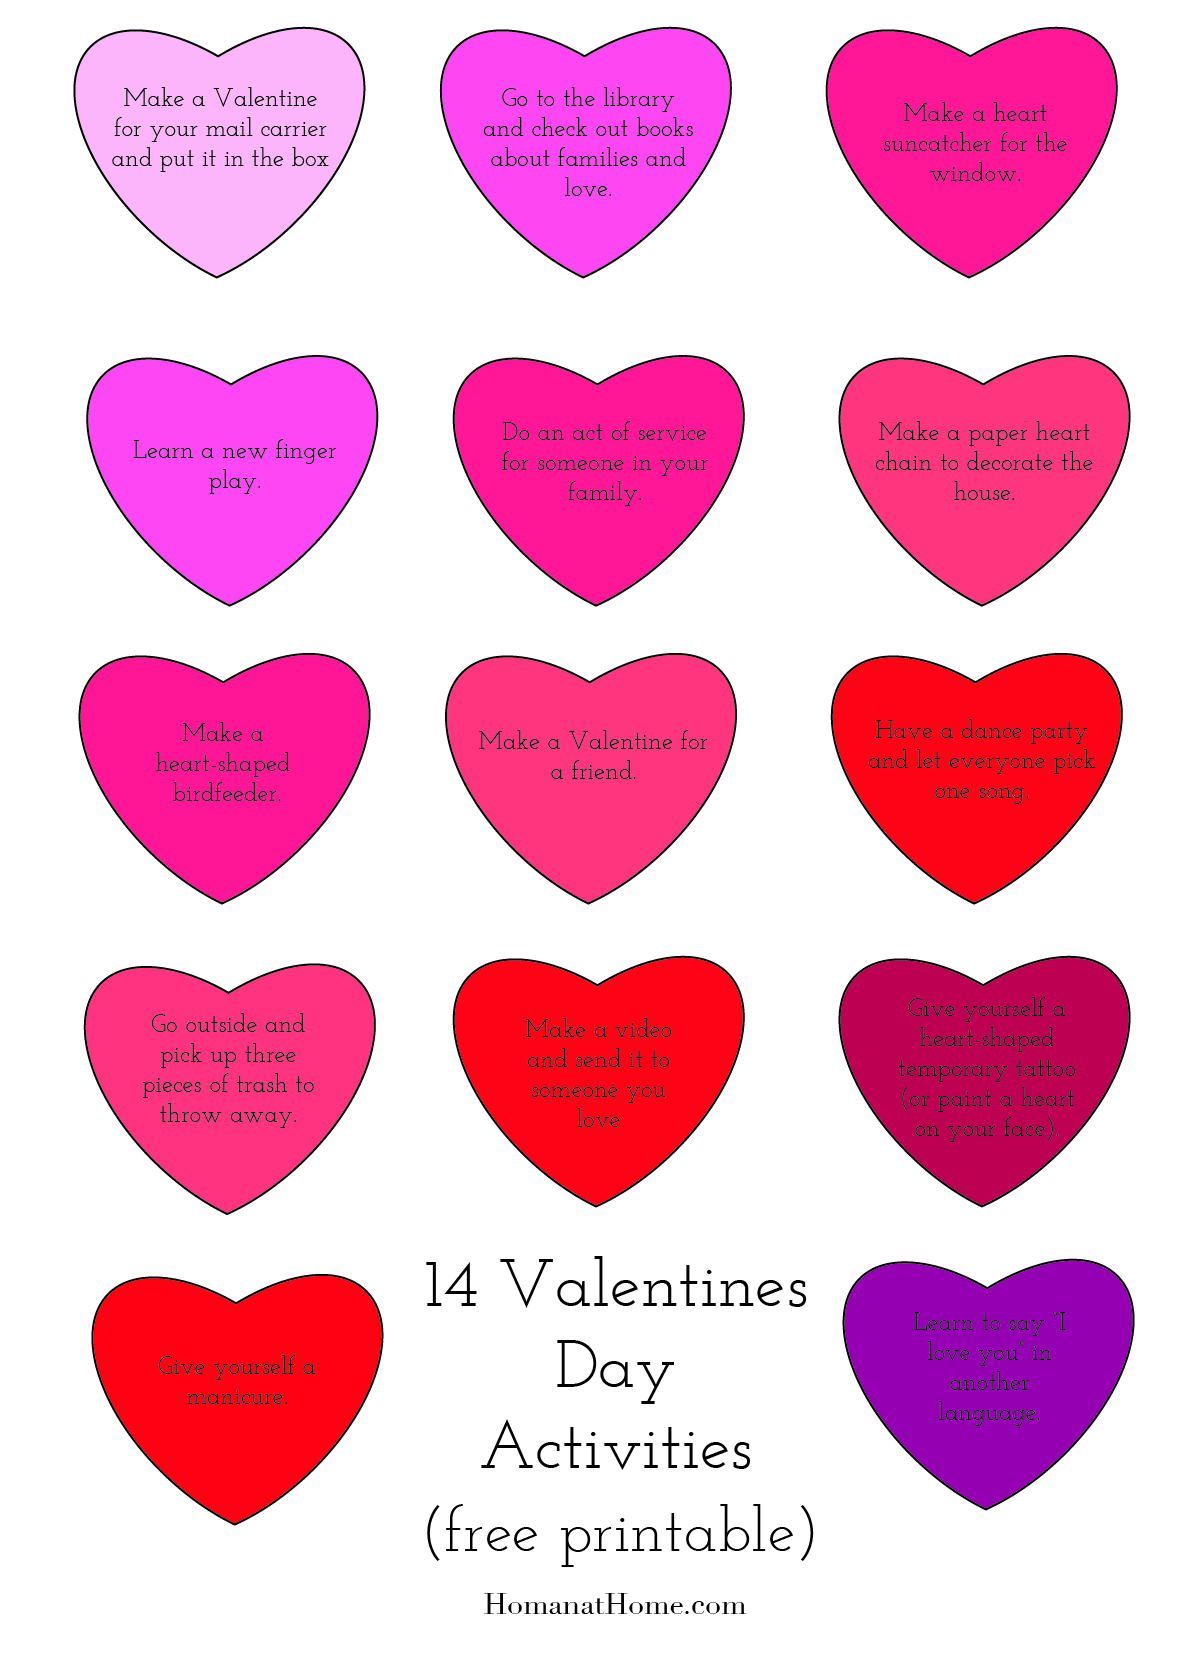 14 Free or Low Cost Activities for Valentines | Homan at Home